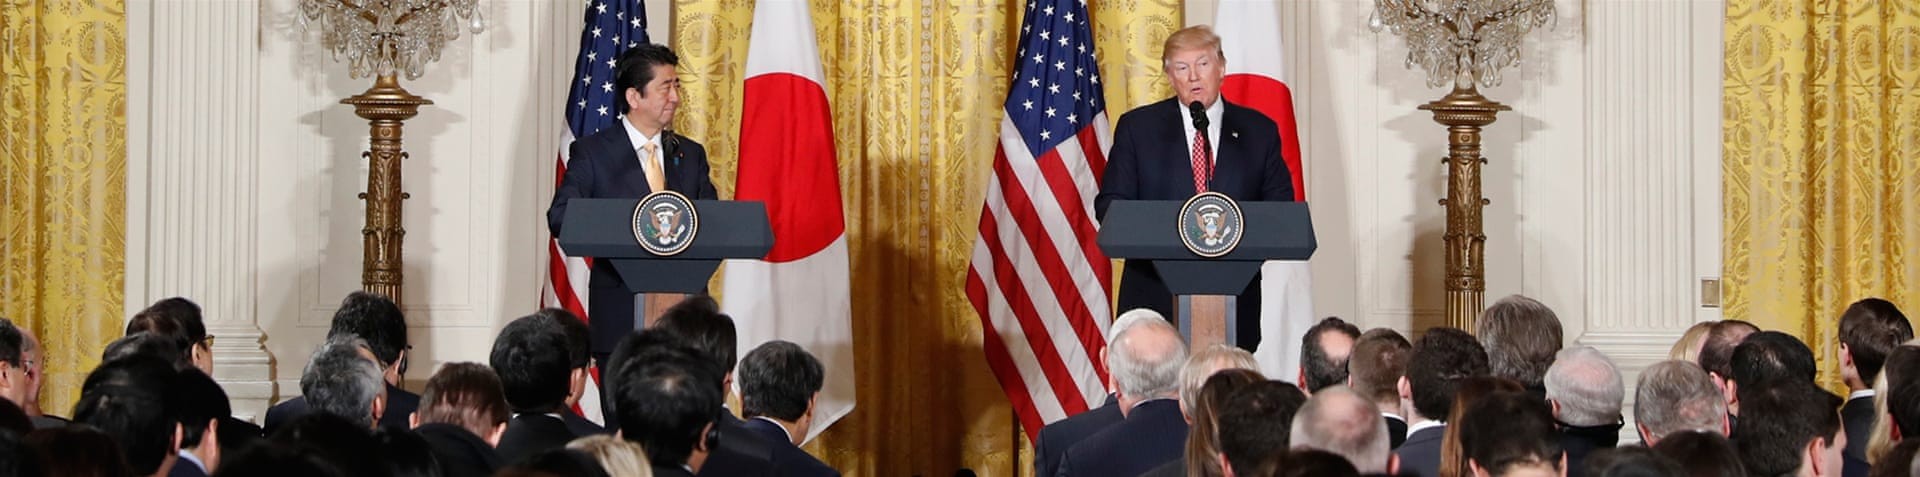 Abe is the second leader to visit Trump at the White House [Evan Vucci/AP]